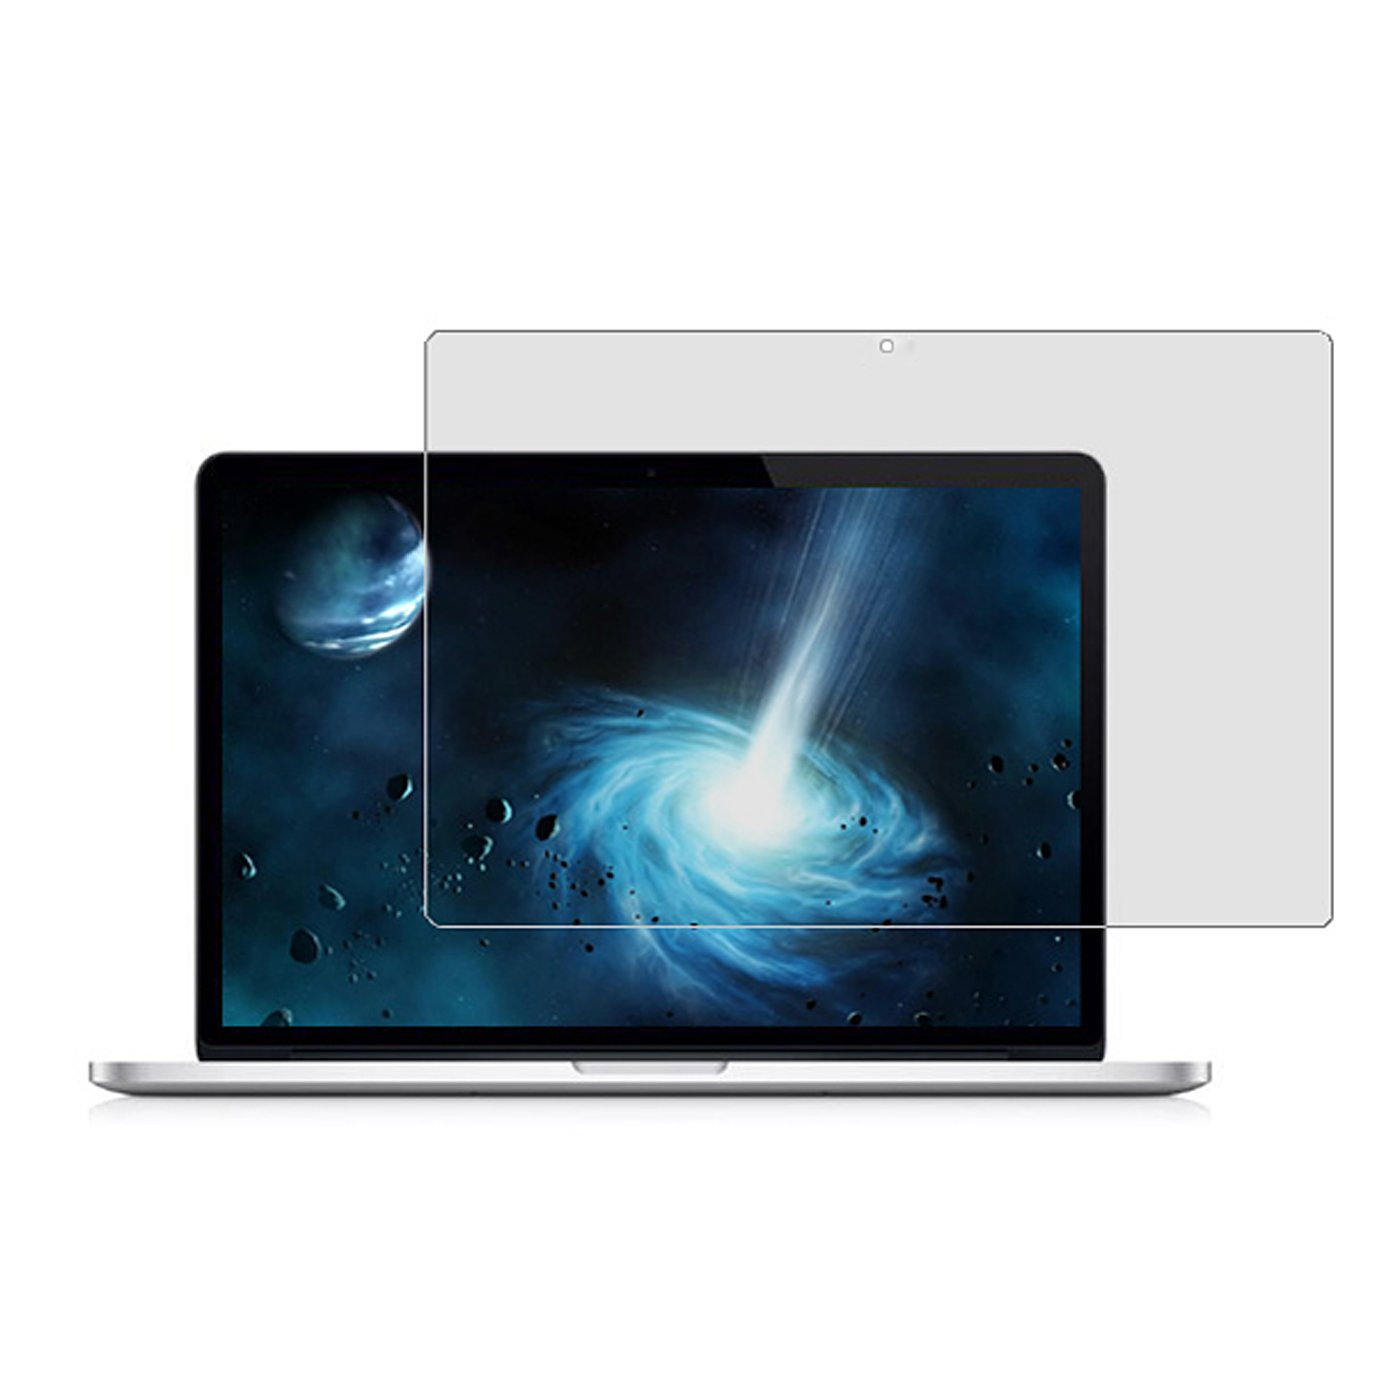 HDE Screen Guard for MacBook Pro Retina 13 - Crystal Clear Scratch Resistant Screen Protector 4328584254